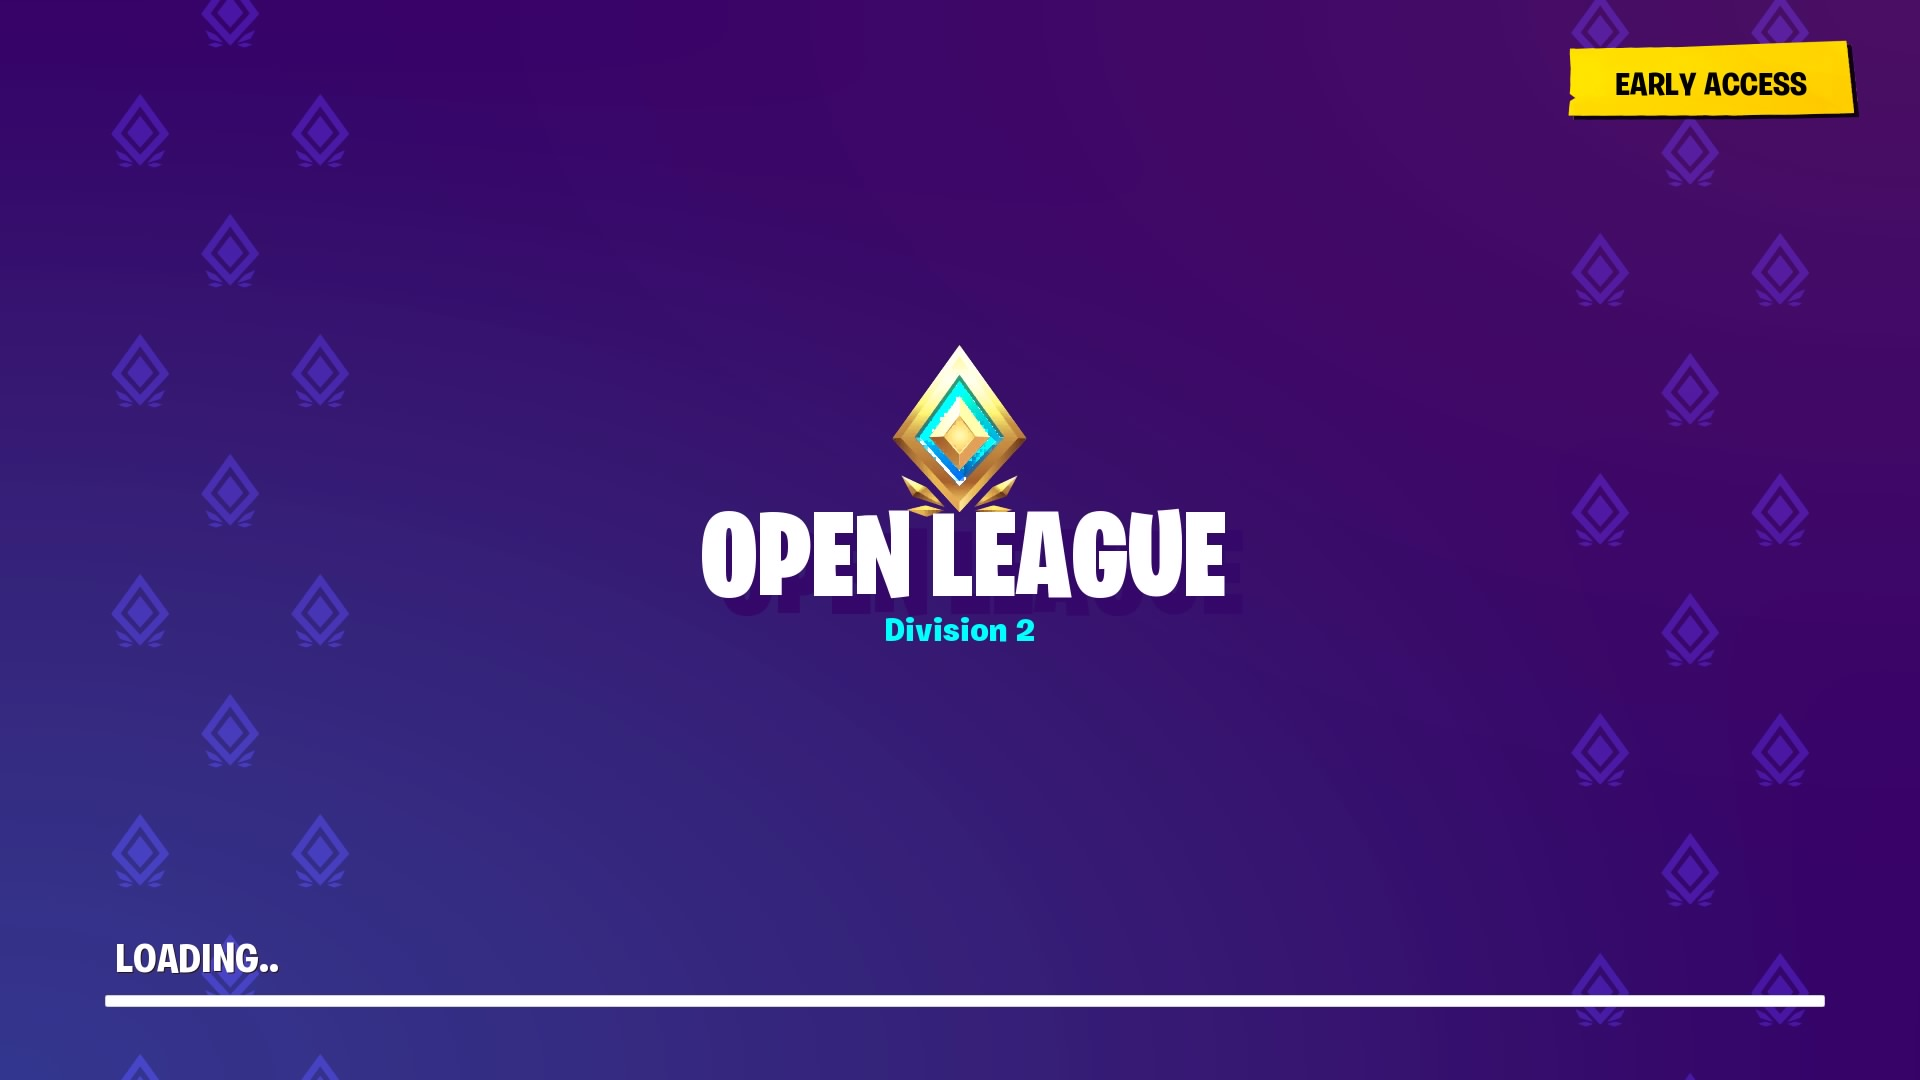 fortnite open league division 2 wallpaper 67714